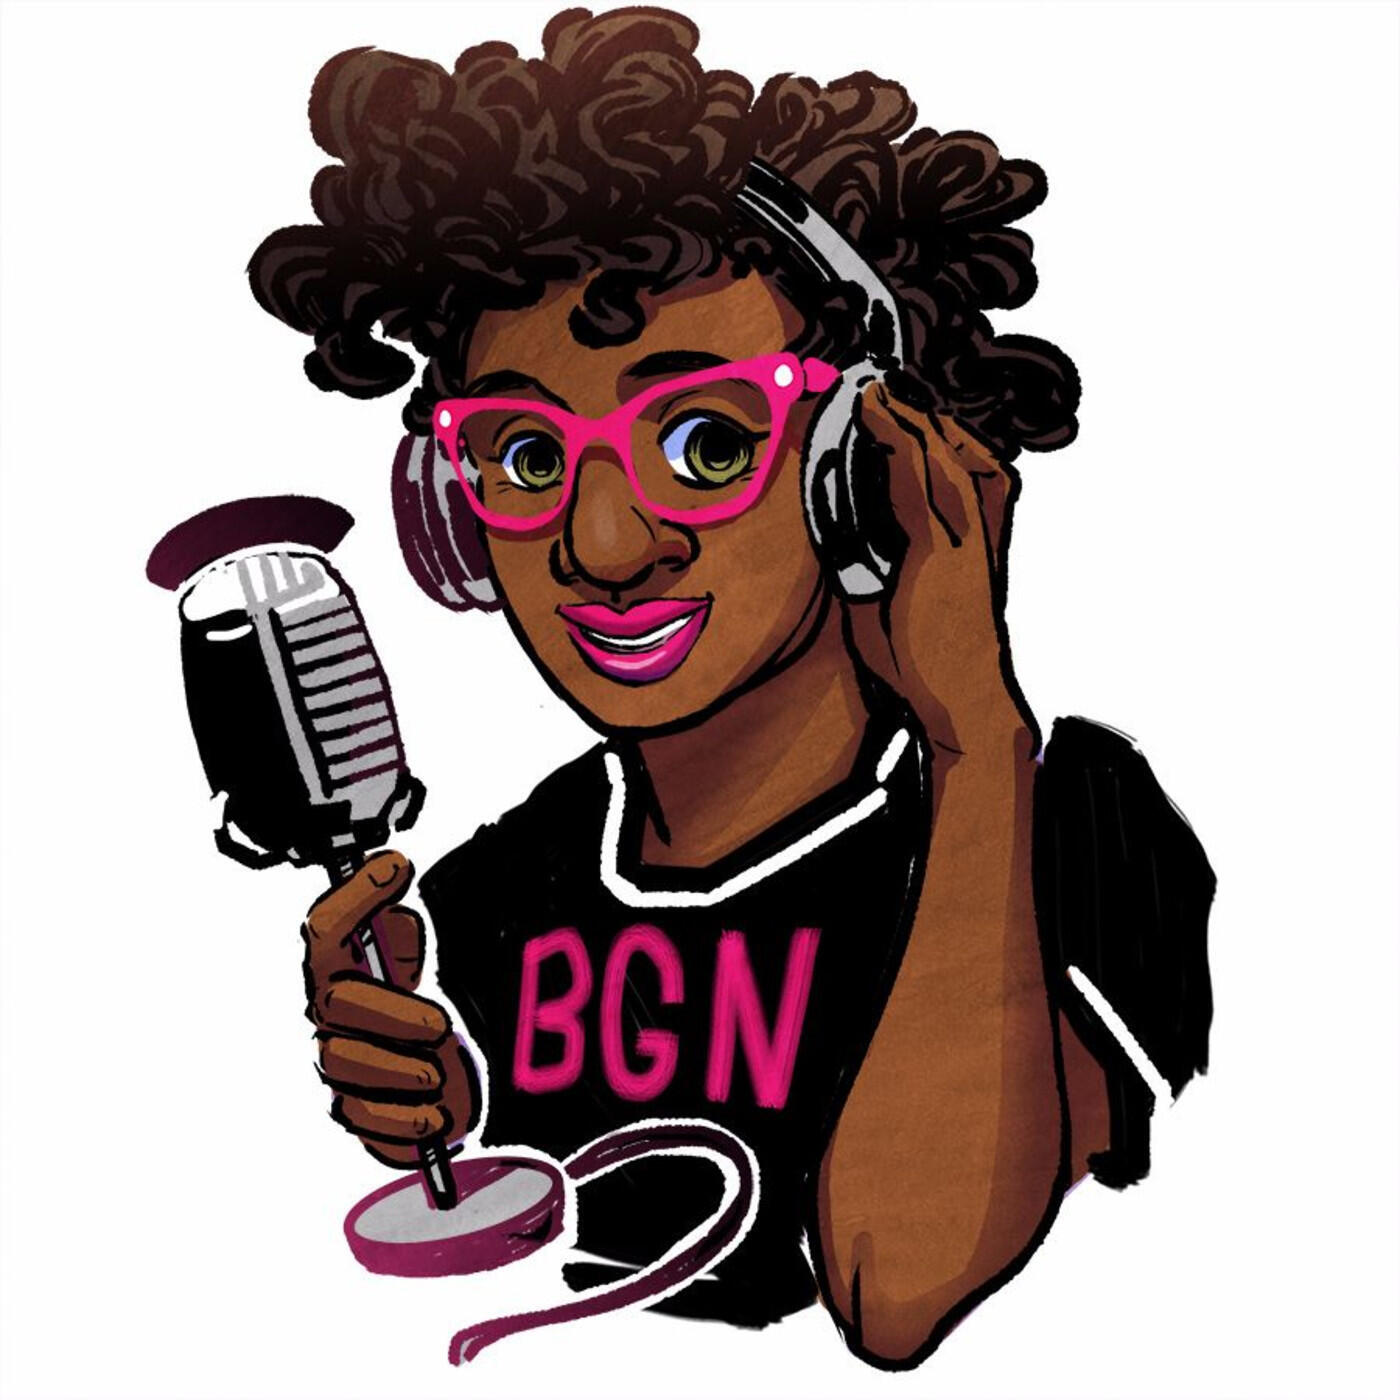 Podcast Episode: BGN #85 | Moxie McGriff and Luke Cage